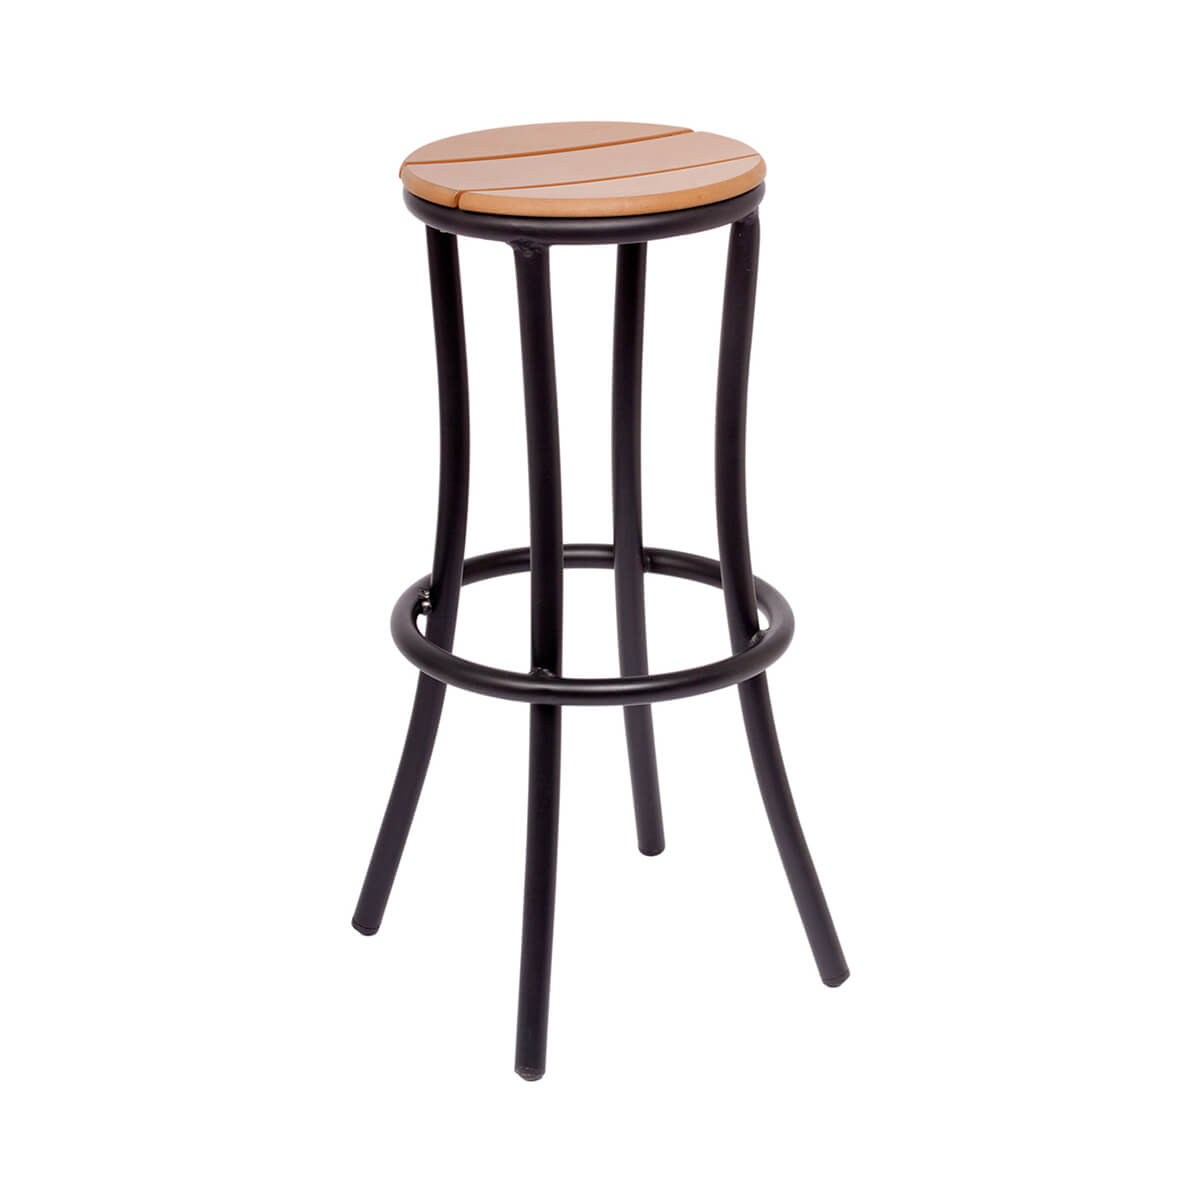 _0000s_0131_Norden Backless Barstool